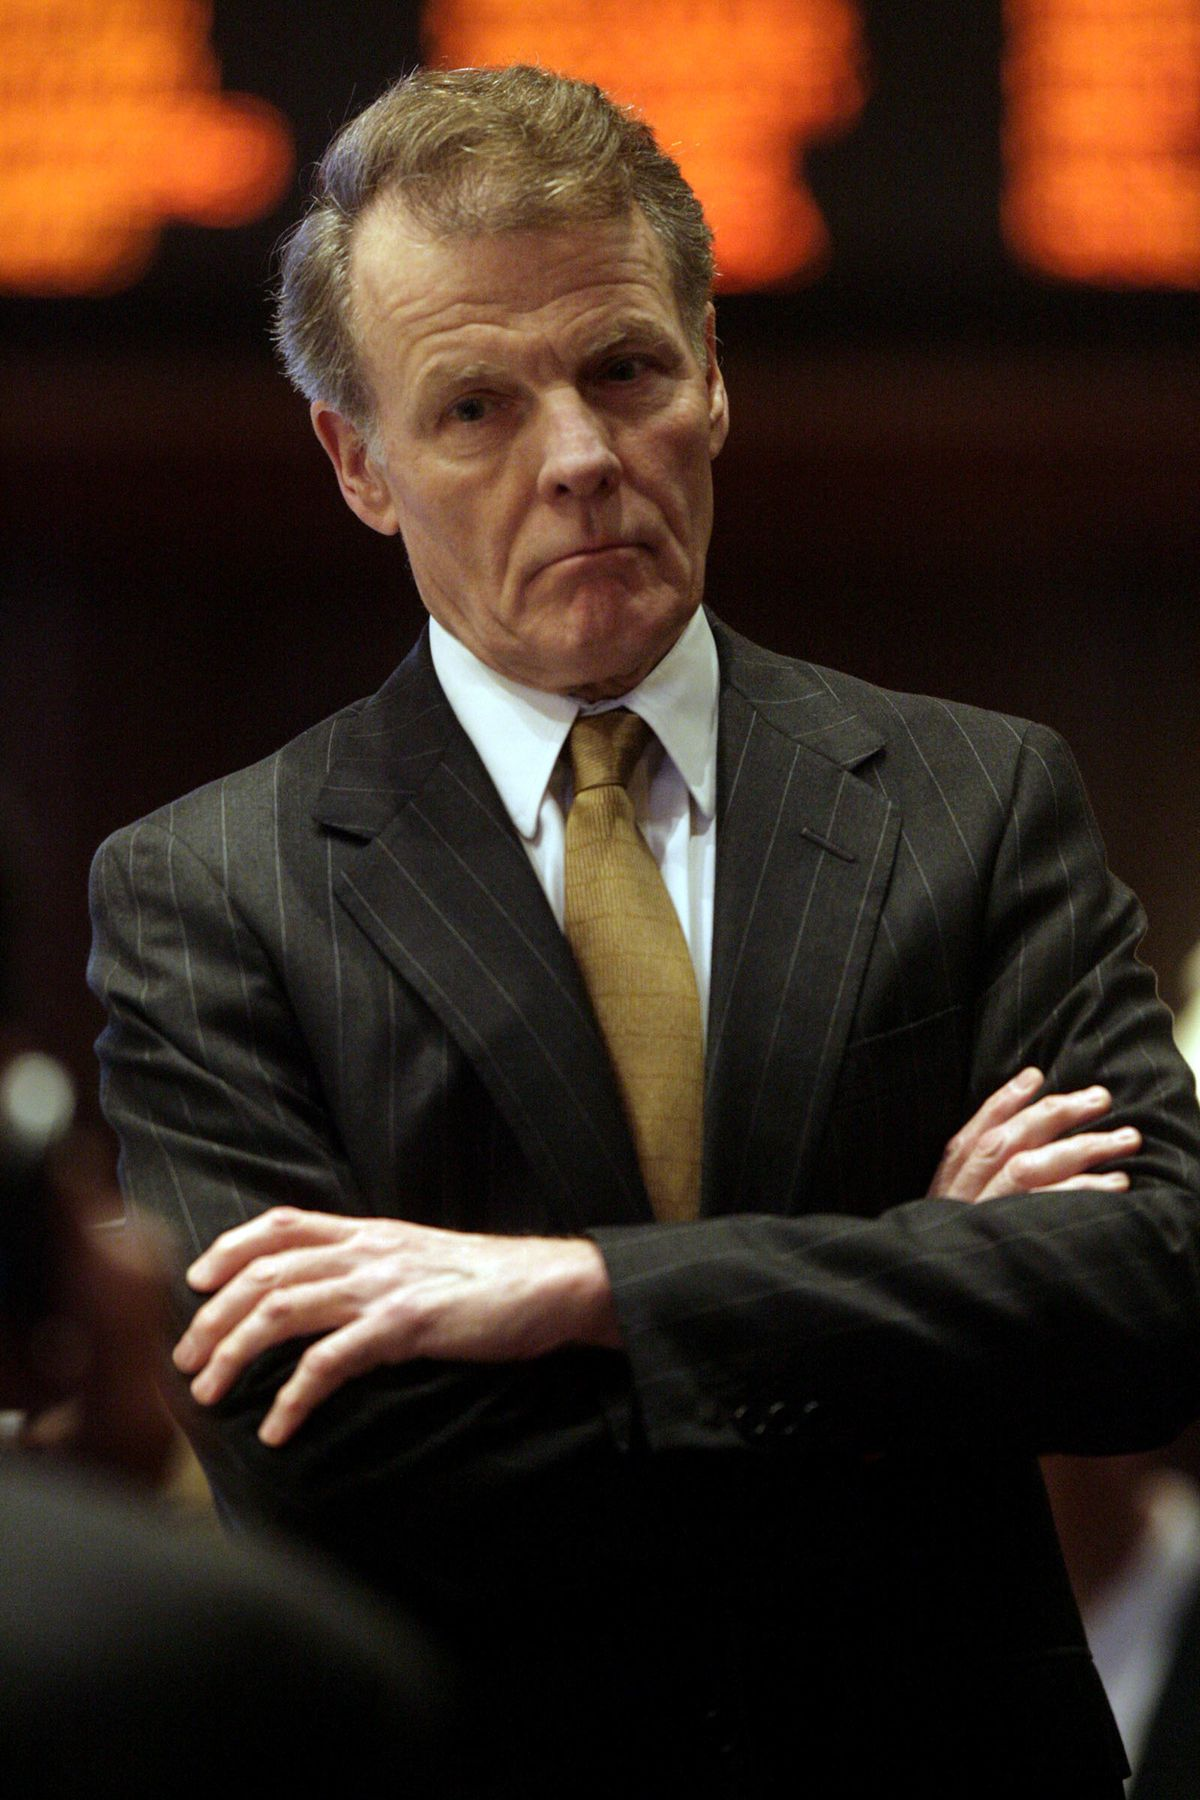 House Speaker Michael Madigan, D-Chicago, listens during a House session in 2007.